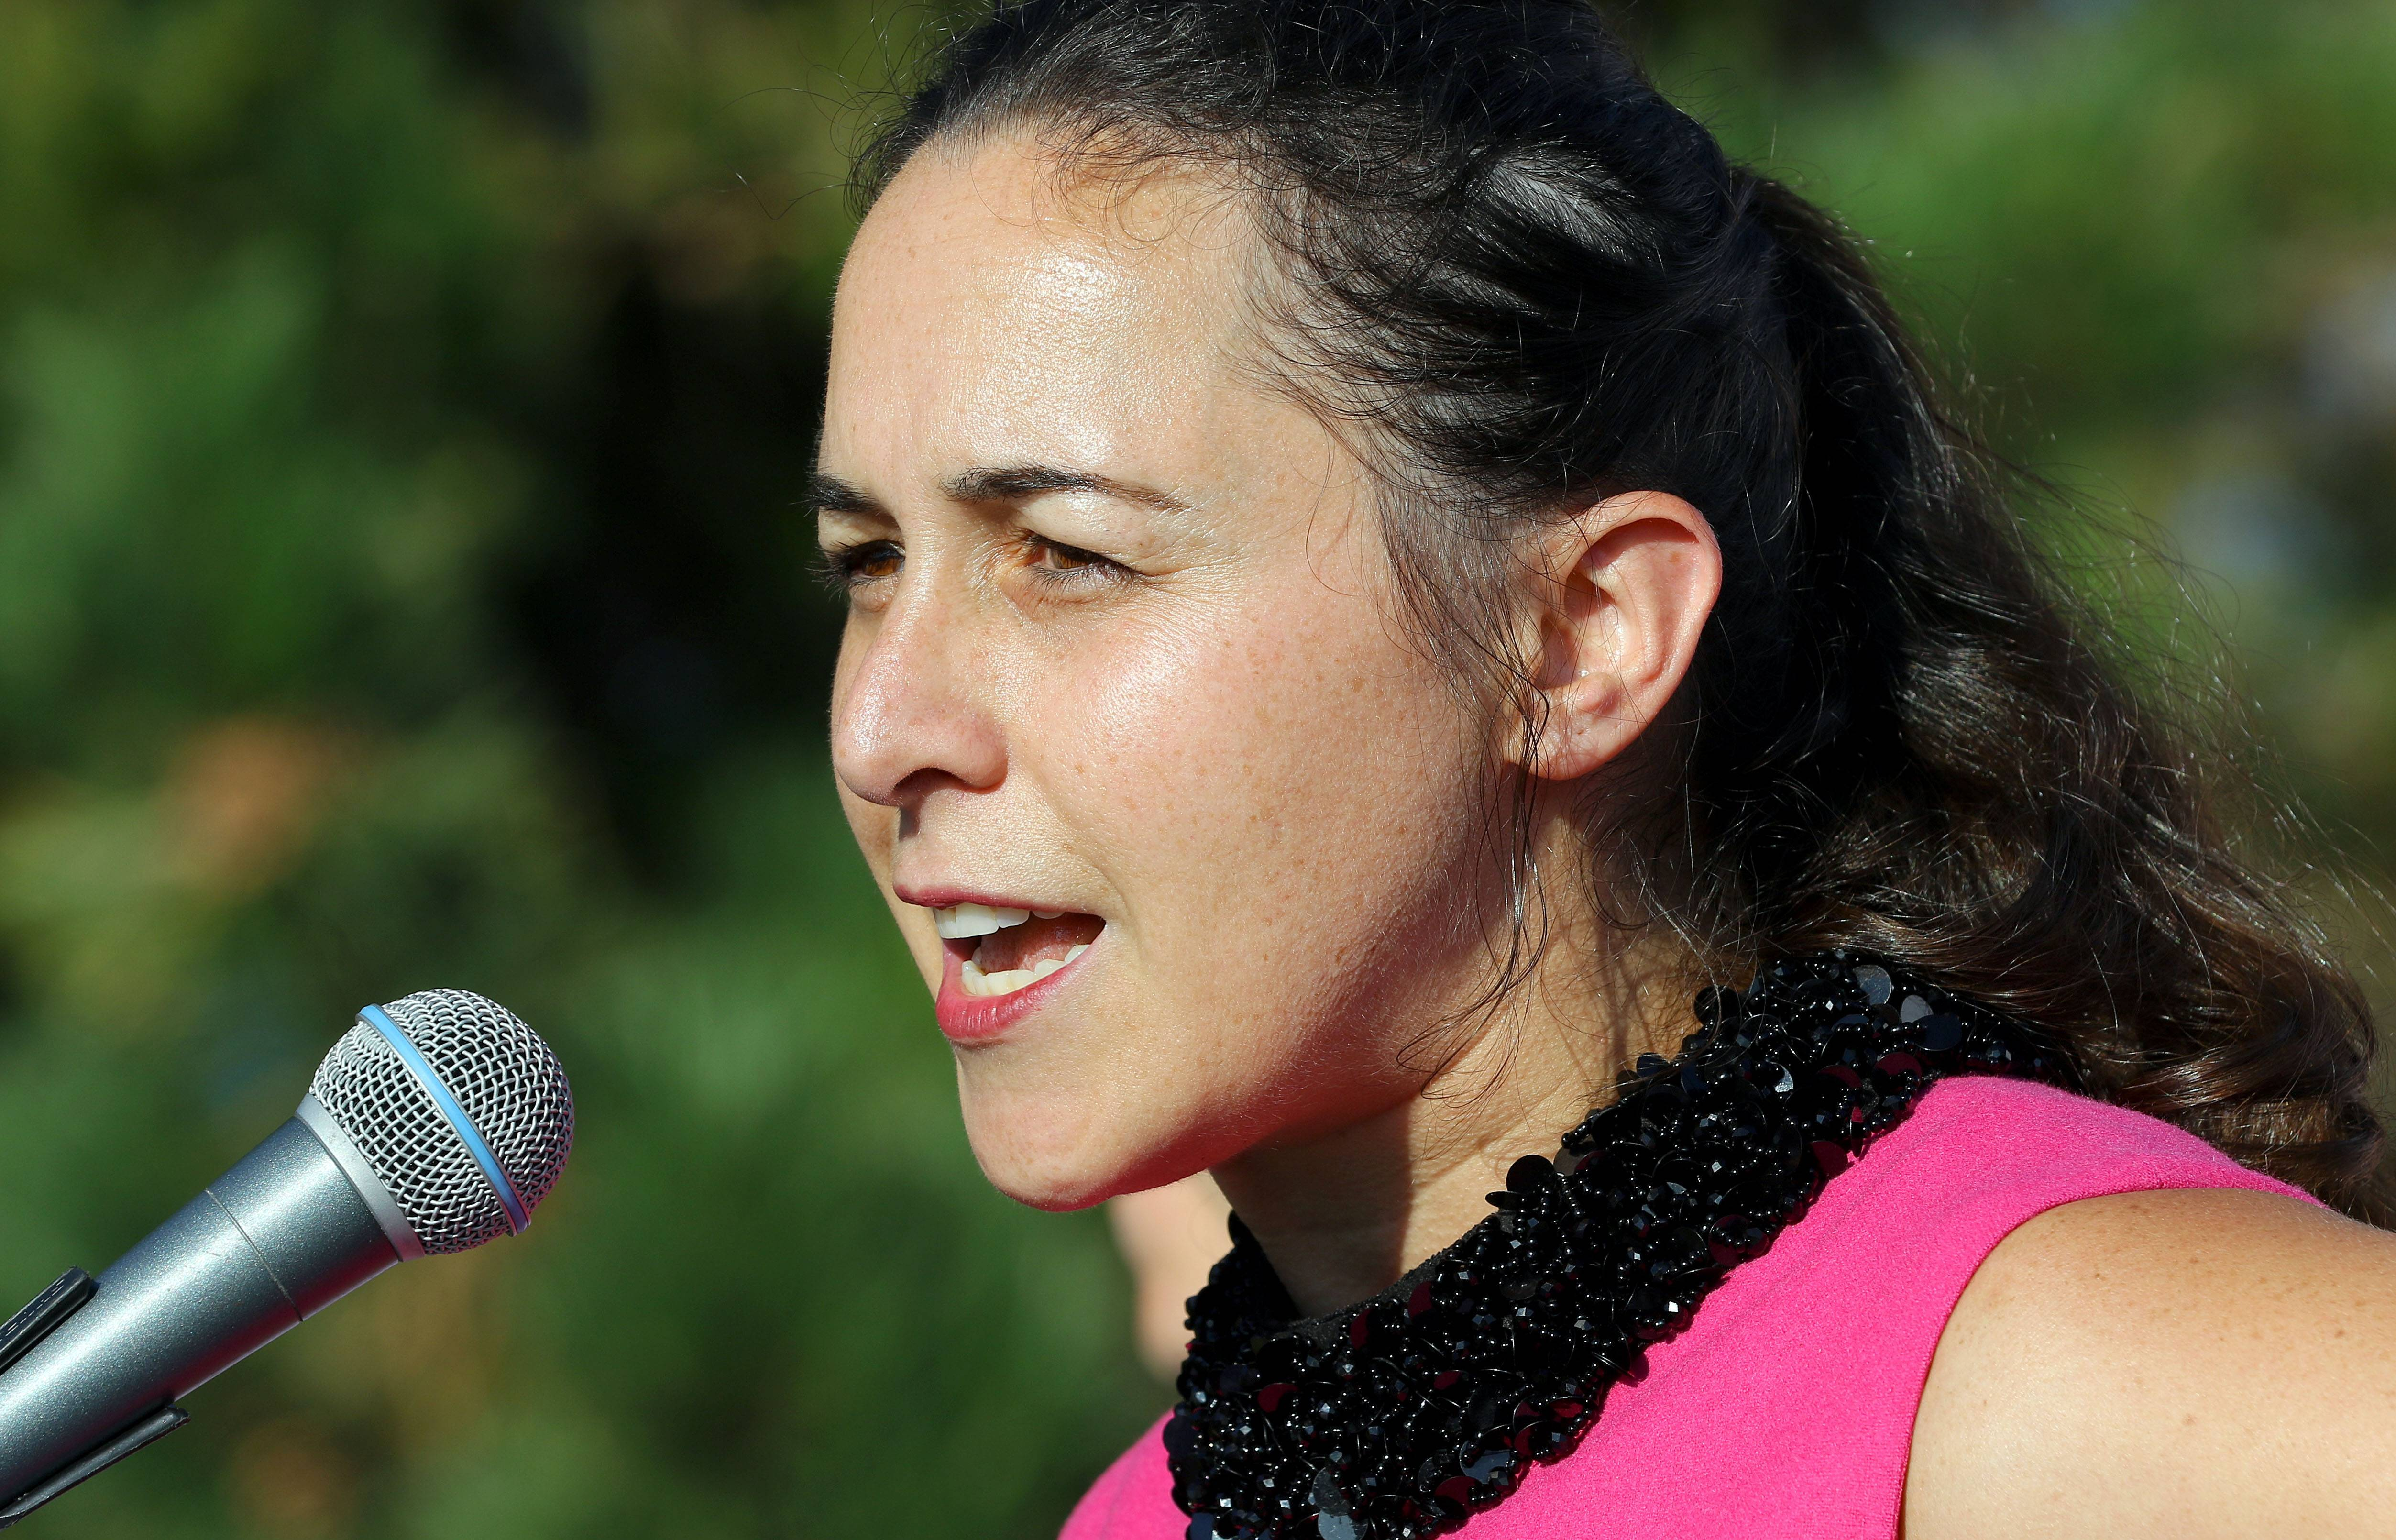 Dr. Anna Katz speaks during Tuesday's pep rally for breast cancer awareness in Libertyville.